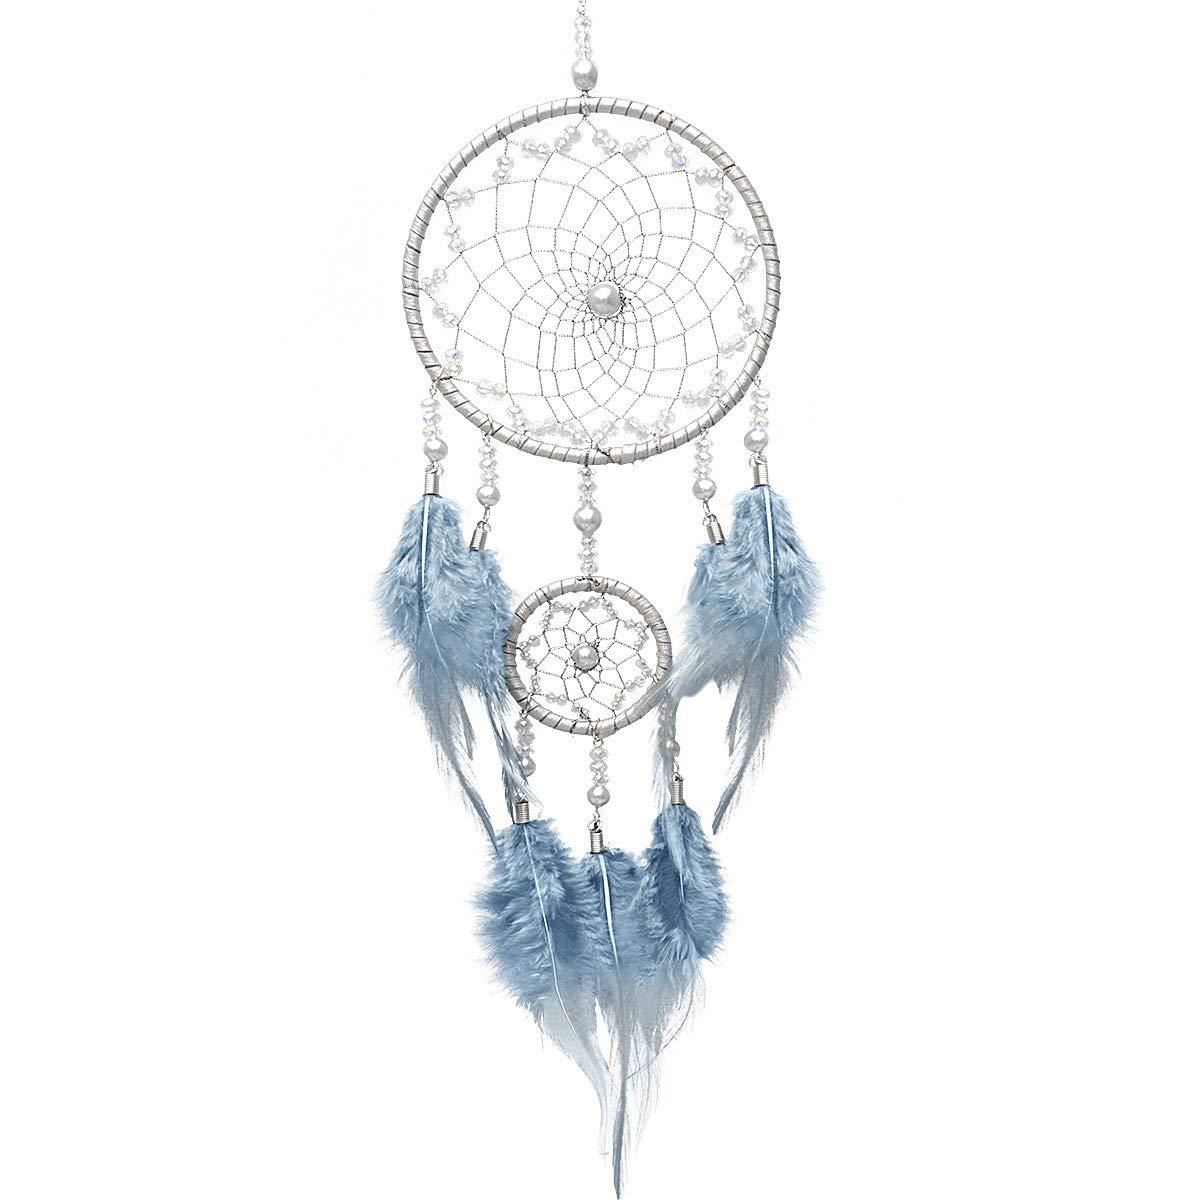 Small Handmade Native Dreamcatcher 2 Rings Traditional Indian Dream Catcher Leather Feathers Mobile Ornament Decoration Home Car Wall Decor Hanging Craft Gifts for Boys Girls Kids – Blue Sliver IMMIGOO